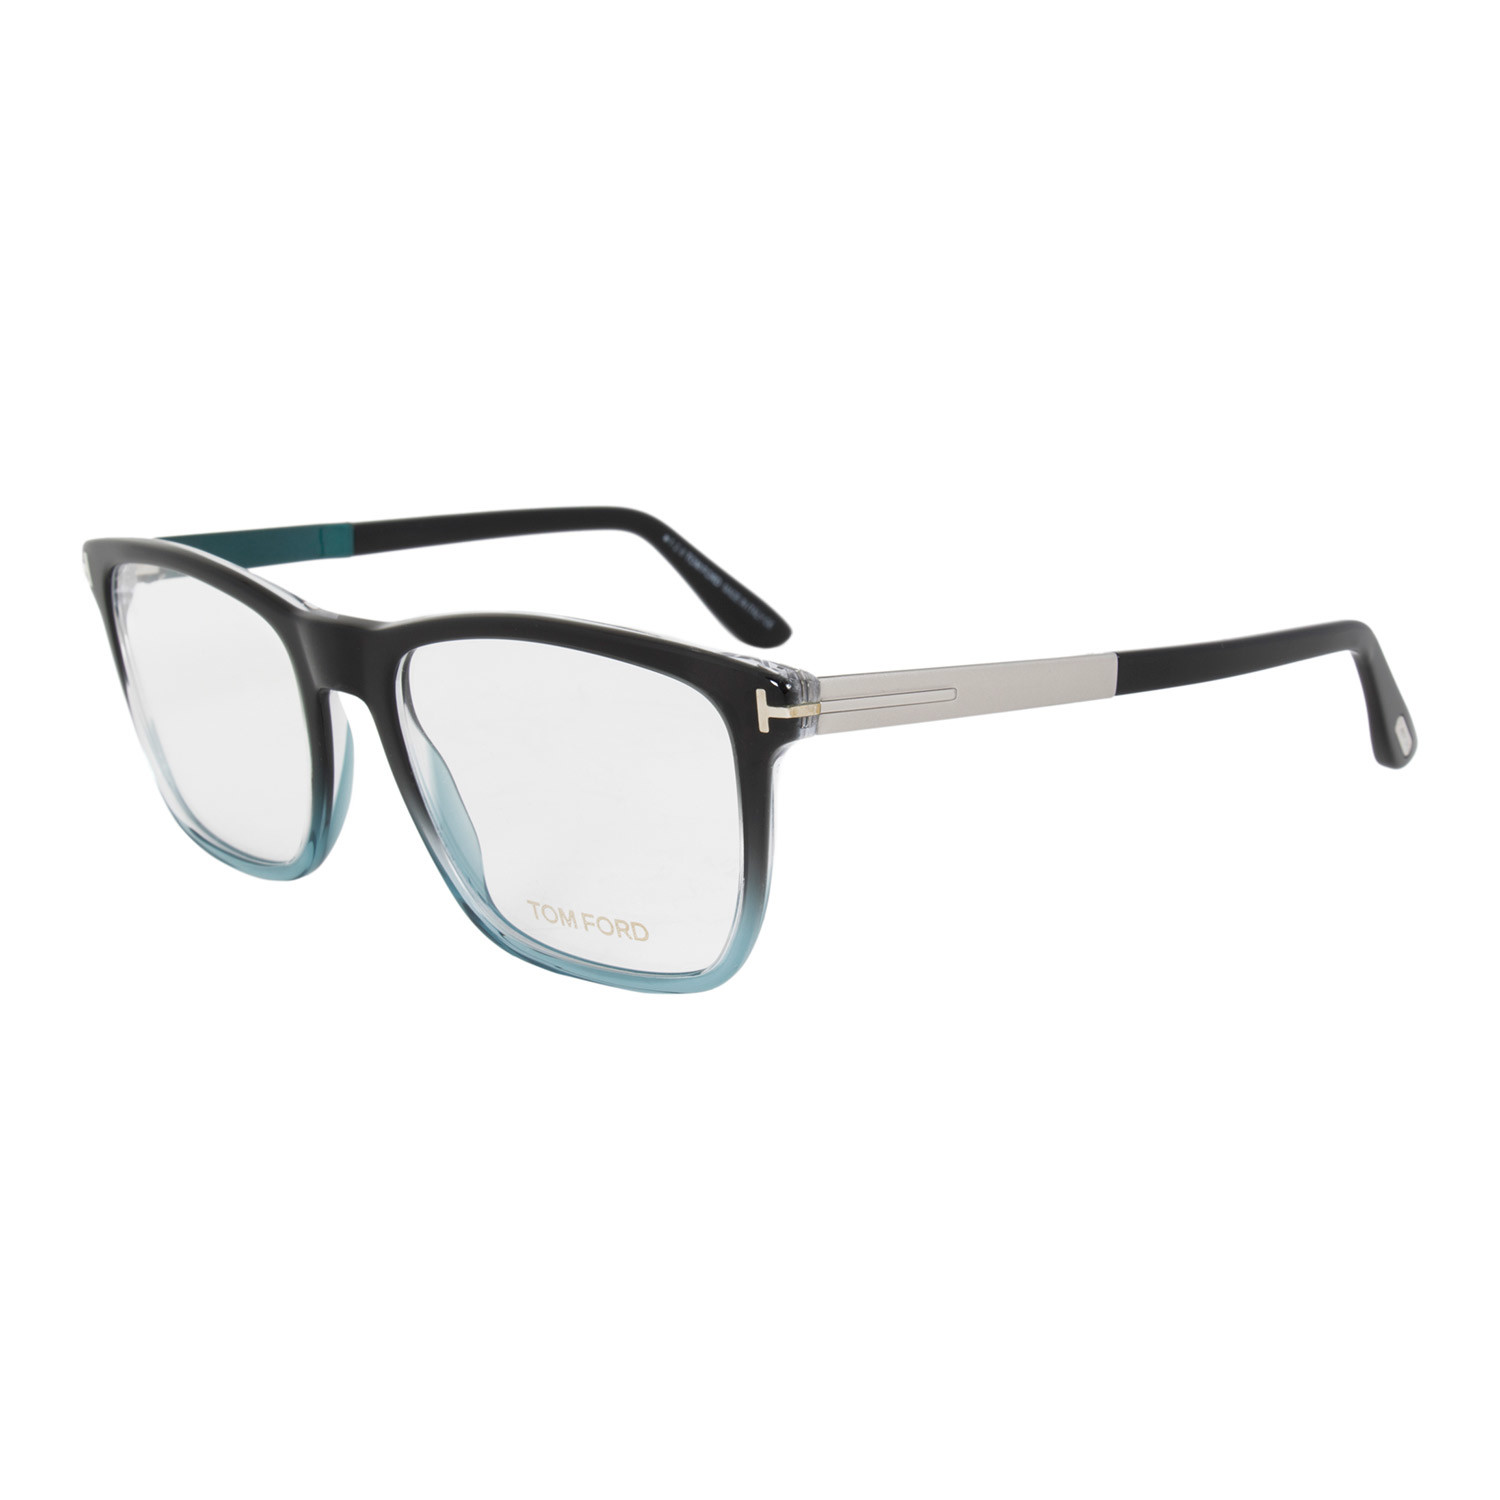 7adf3009c6b68 Tom Ford    FT5351 05A - Designer Optical Glasses - Touch of Modern